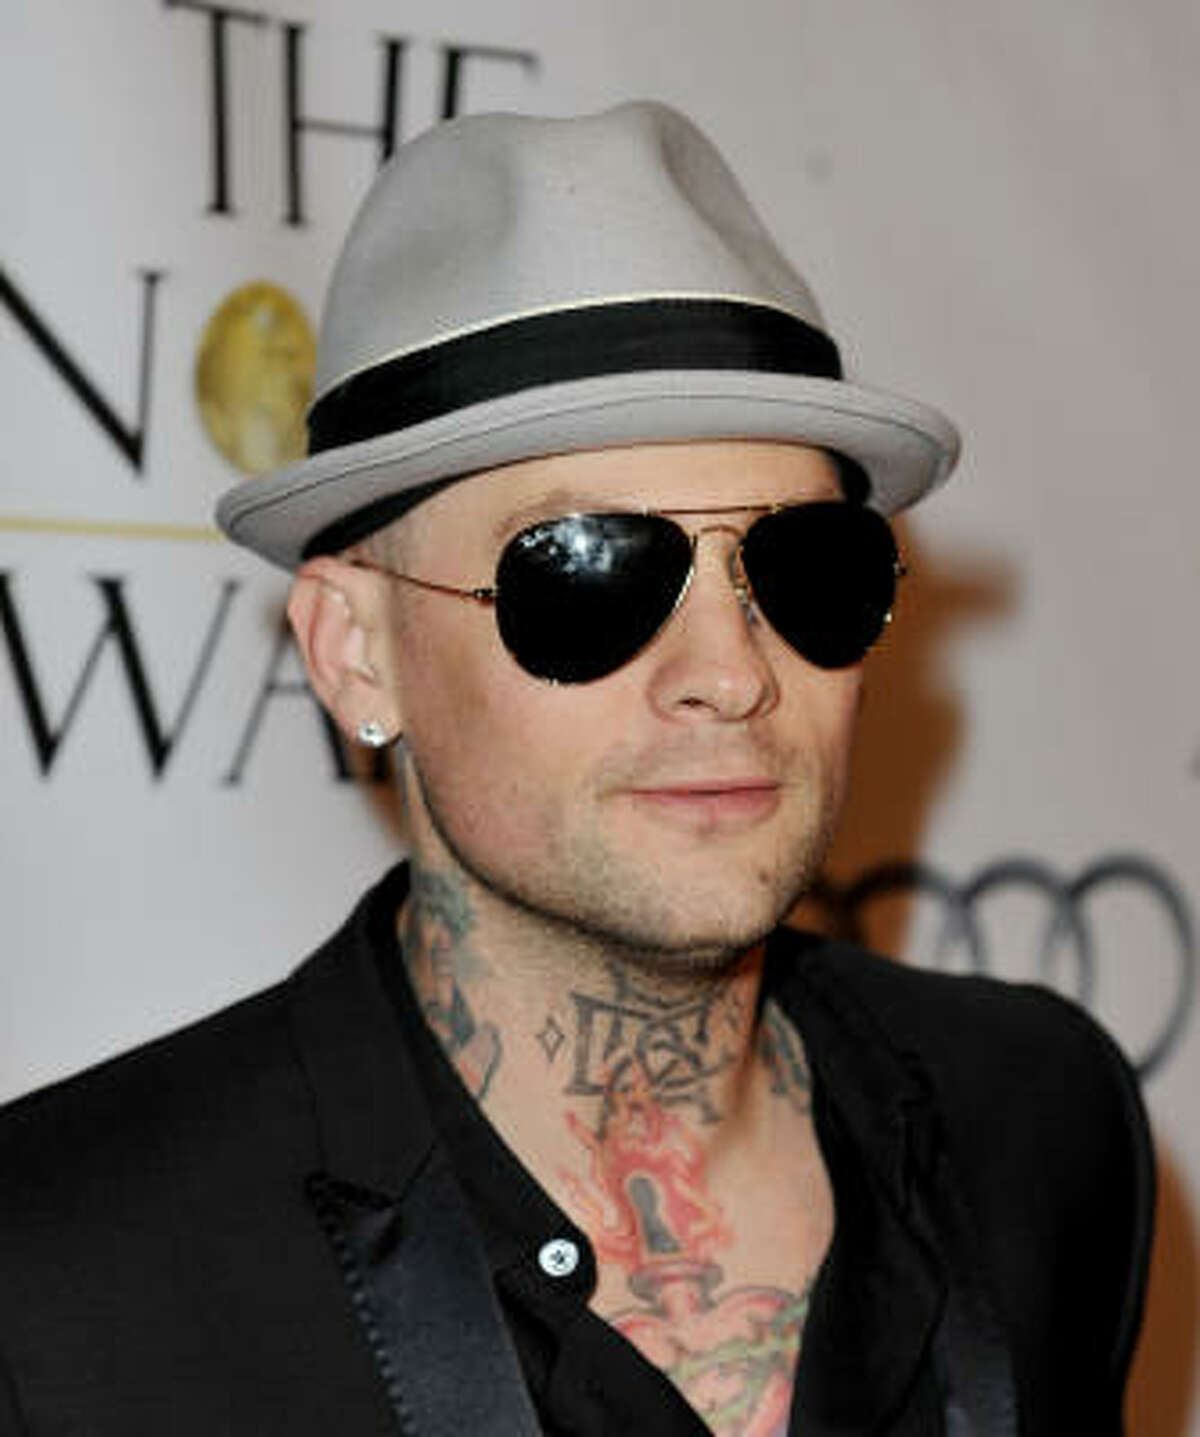 Benji Madden of Good Charlotte and Paris Hilton dating fame has multiple neck tattoos.